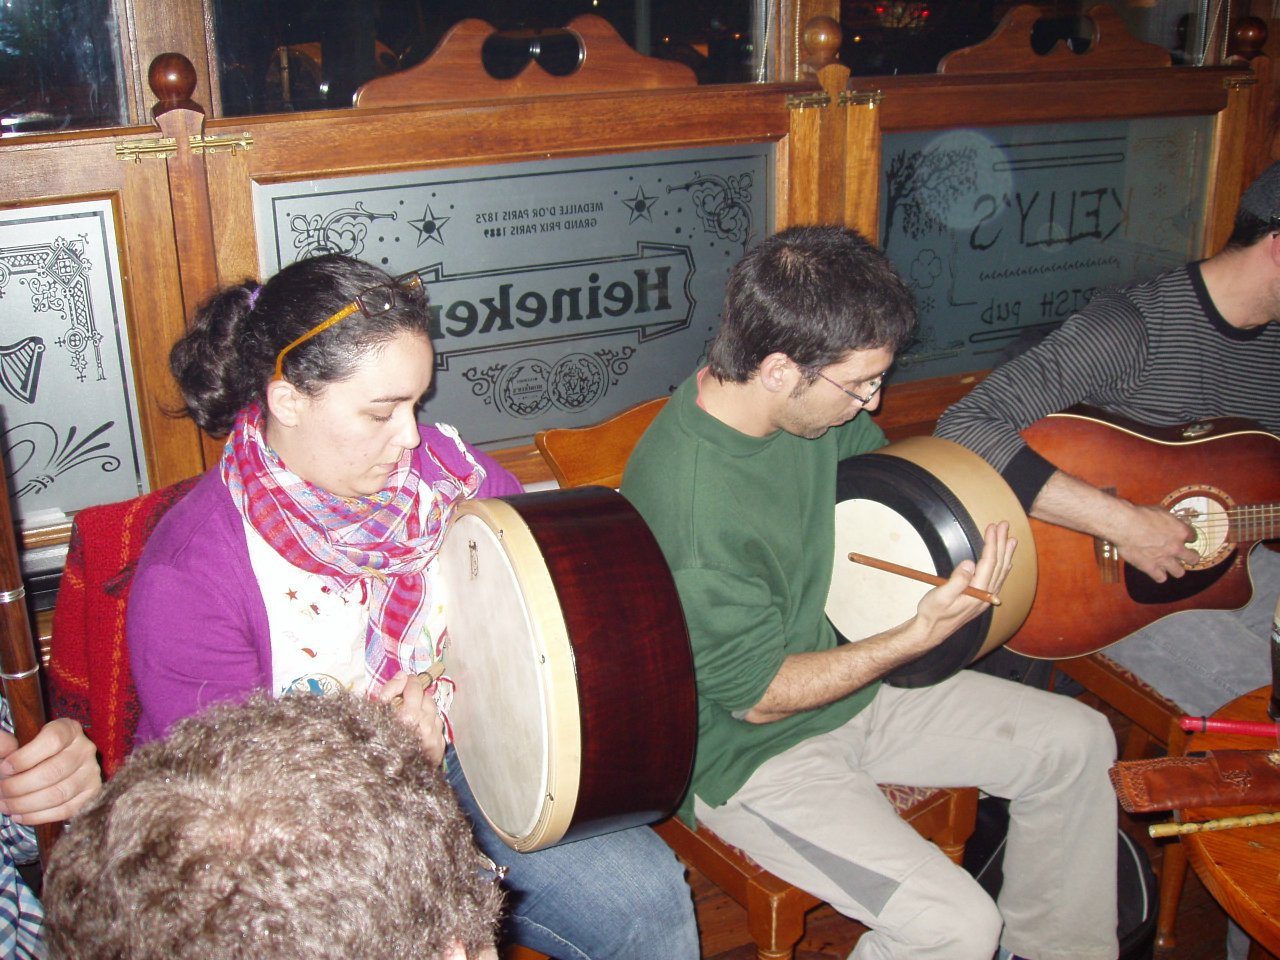 Playing bodhran at Kelly's